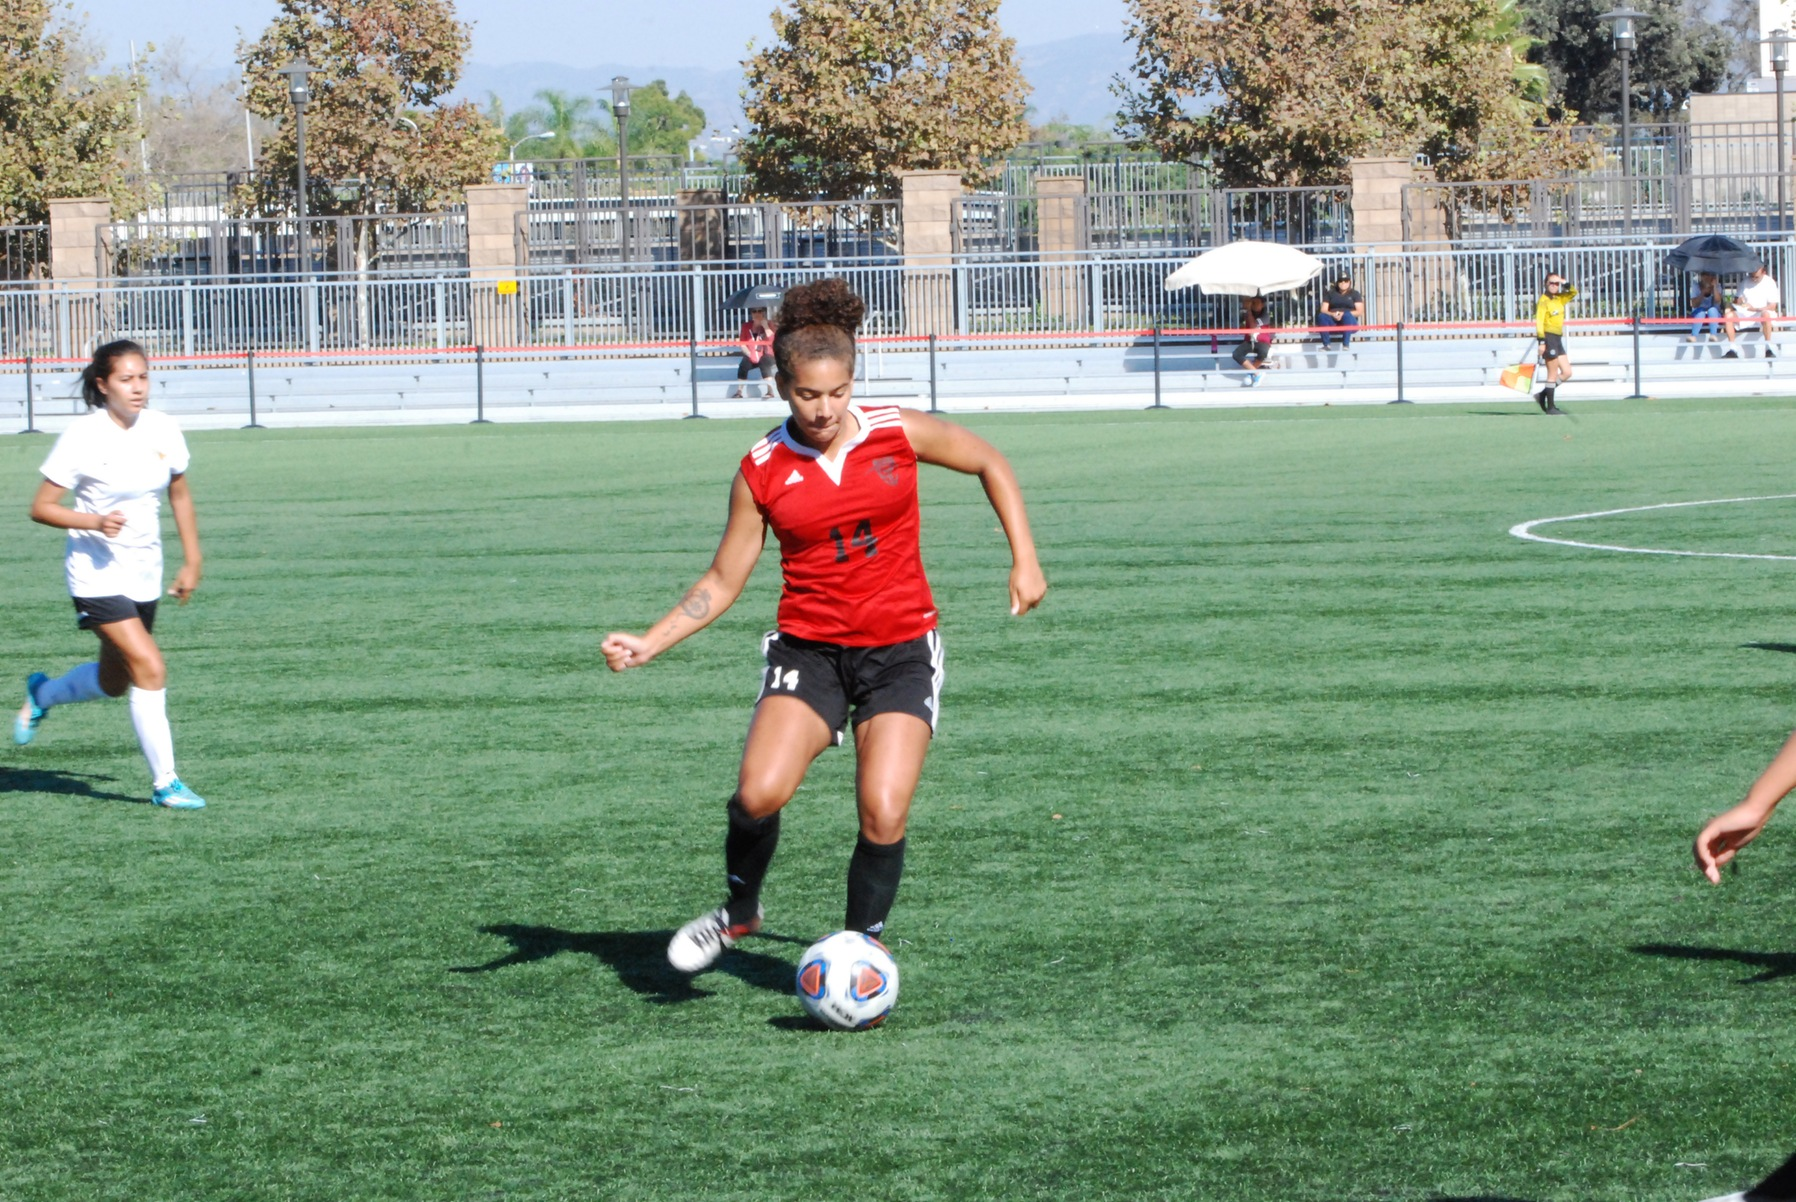 Dons Battle with Golden West, Fall 1-0